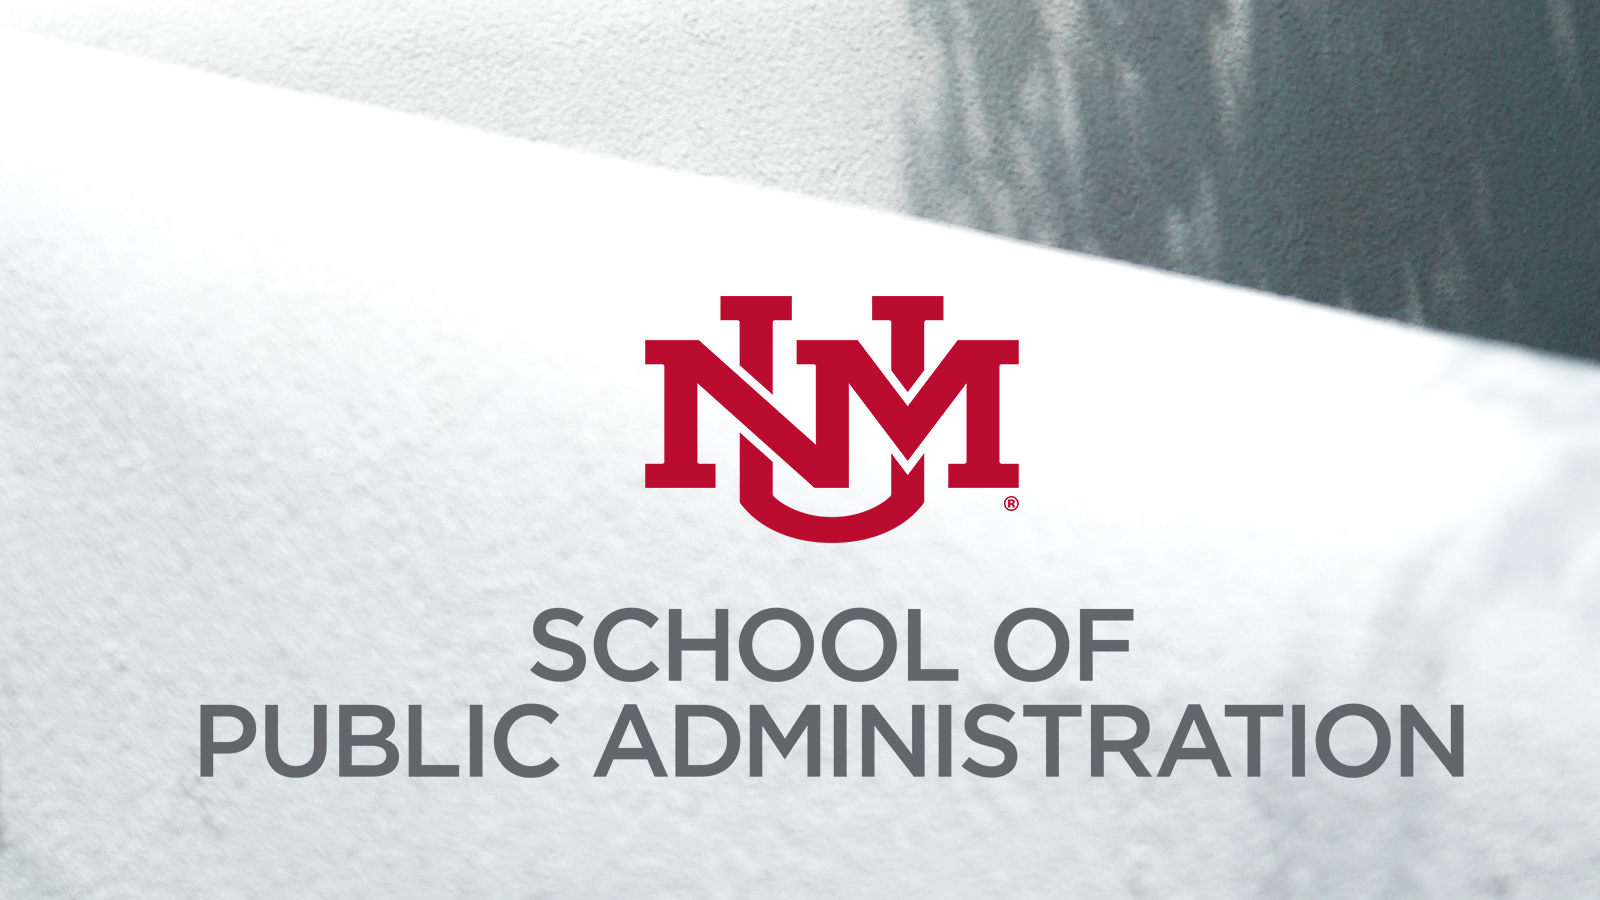 School of Public Administration receives top accreditation marks